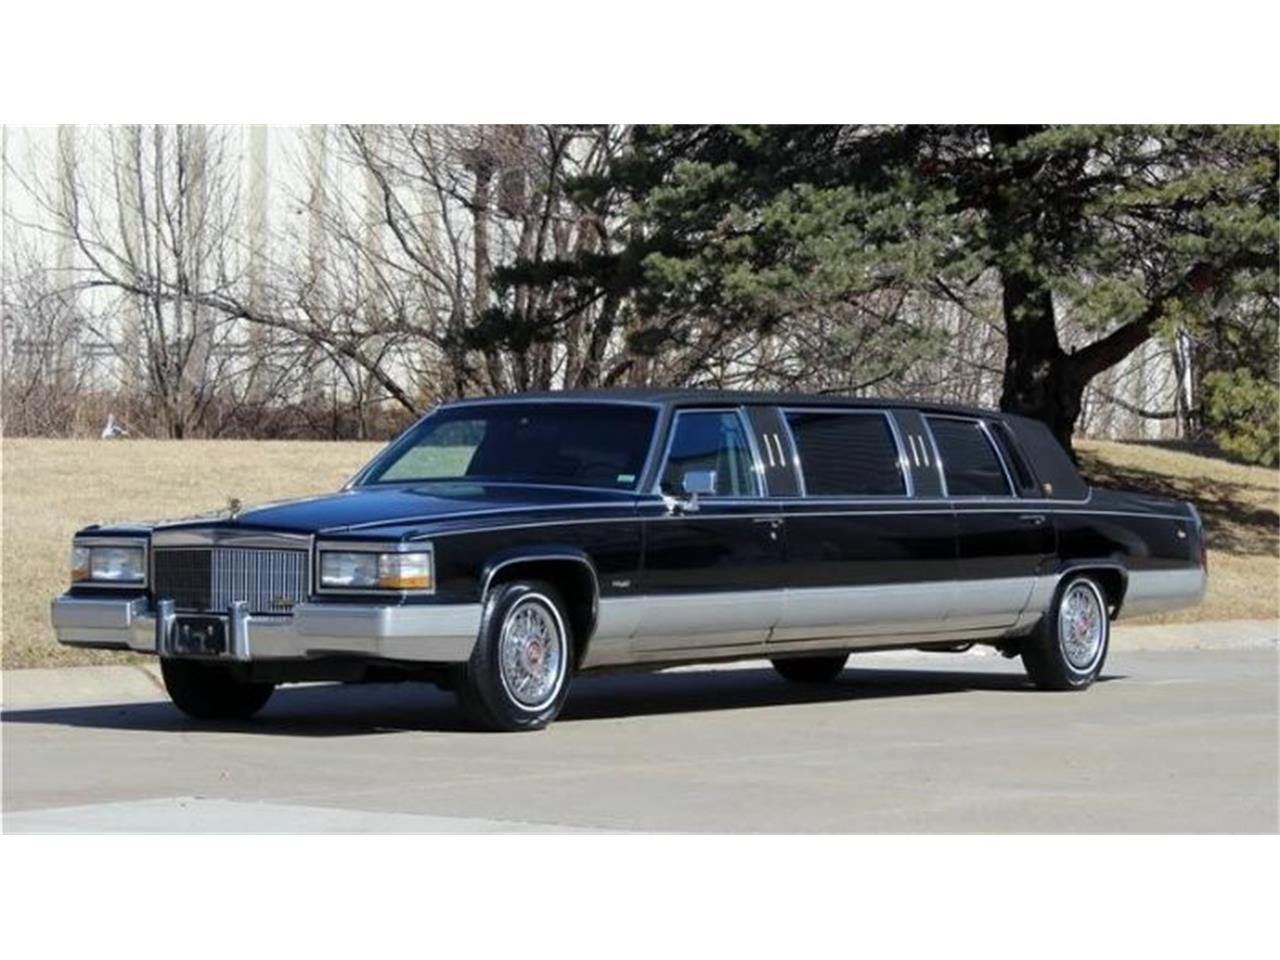 Limo For Sale >> For Sale 1990 Cadillac Limousine In Cadillac Michigan